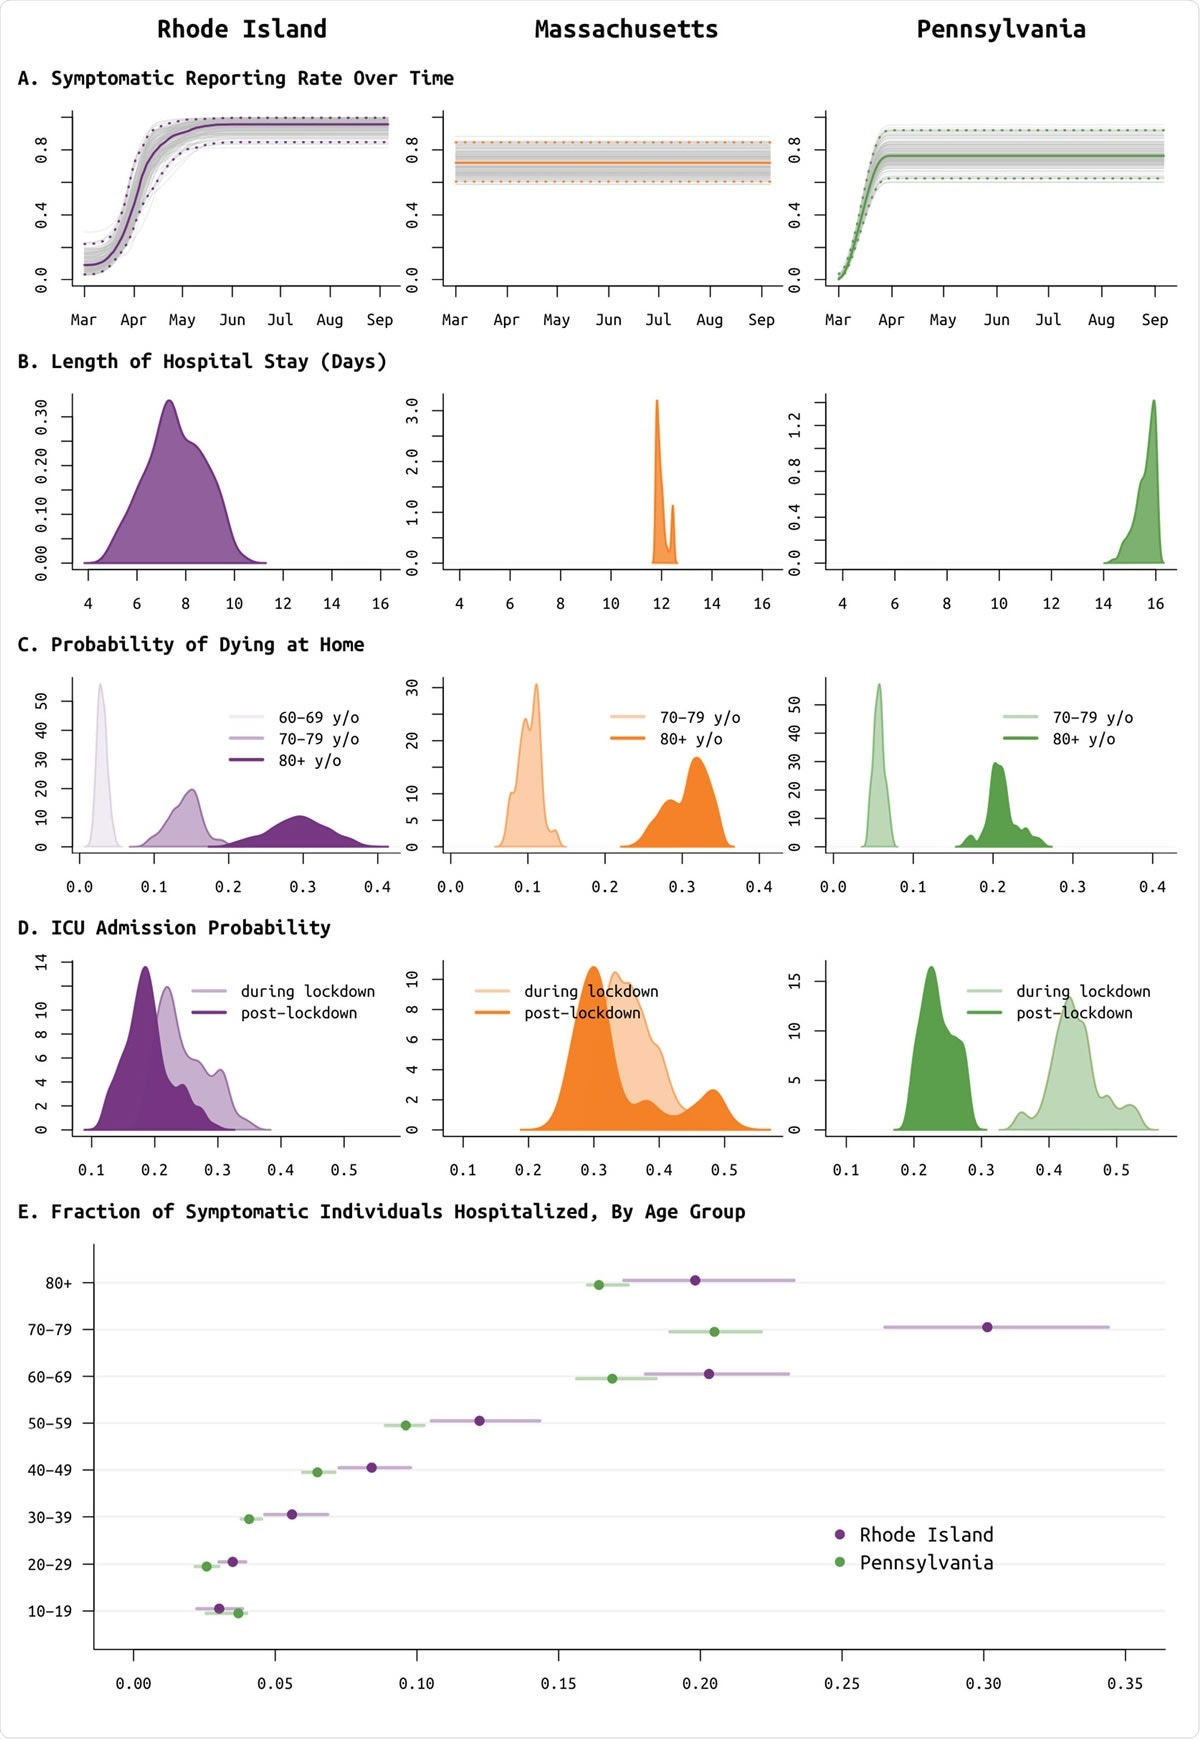 "Posterior distributions of reporting rate (panel A) and clinical parameters (panels B to E) for Rhode Island (purple, left column), Massachusetts (orange, middle column), and Pennsylvania (green, right column). (A) report parameter ρ, i.e. H. The proportion of symptomatic SARS-CoV-2 cases reported to the healthcare system, plotted as a function of time. In Rhode Island, it was known that no tests were available and cases could not be confirmed in March. therefore a spline function was suitable for ρ. The same feature provided a better fit for Pennsylvania data, but not for Massachusetts data. (B) The median length of hospital stay on the medical floor was 7.5 days in RI, 11.9 days in MA, and 15.7 days in PA. In MA, this parameter was limited to 11.8 to 12.8 days, since without this restriction there were identifiability problems due to the lack of the data stream ""cumulative hospital stays"". (C) Probabilities of Death at Home for Age Groups 60-69, 70-79, and 80+; The age group 60-69 was only included for RI as the data for PA and MA were insufficient. These largely reflect the epidemics that occur in nursing home populations where individuals are not considered hospitalized if they remain in care in their community care facility in a severe or advanced clinical condition. These probabilities are important when predicting hospital bed capacity. (D) Age-adjusted probability of occurrence in the intensive care unit during the blocking period in spring 2020 (lighter color) and after the blocking period (darker color). (E) Probability of hospital stay (median and 95% CIs) for symptomatic SARS-CoV-2 infections by age group; MA estimates are excluded because these priorities were established based on estimates in RI."